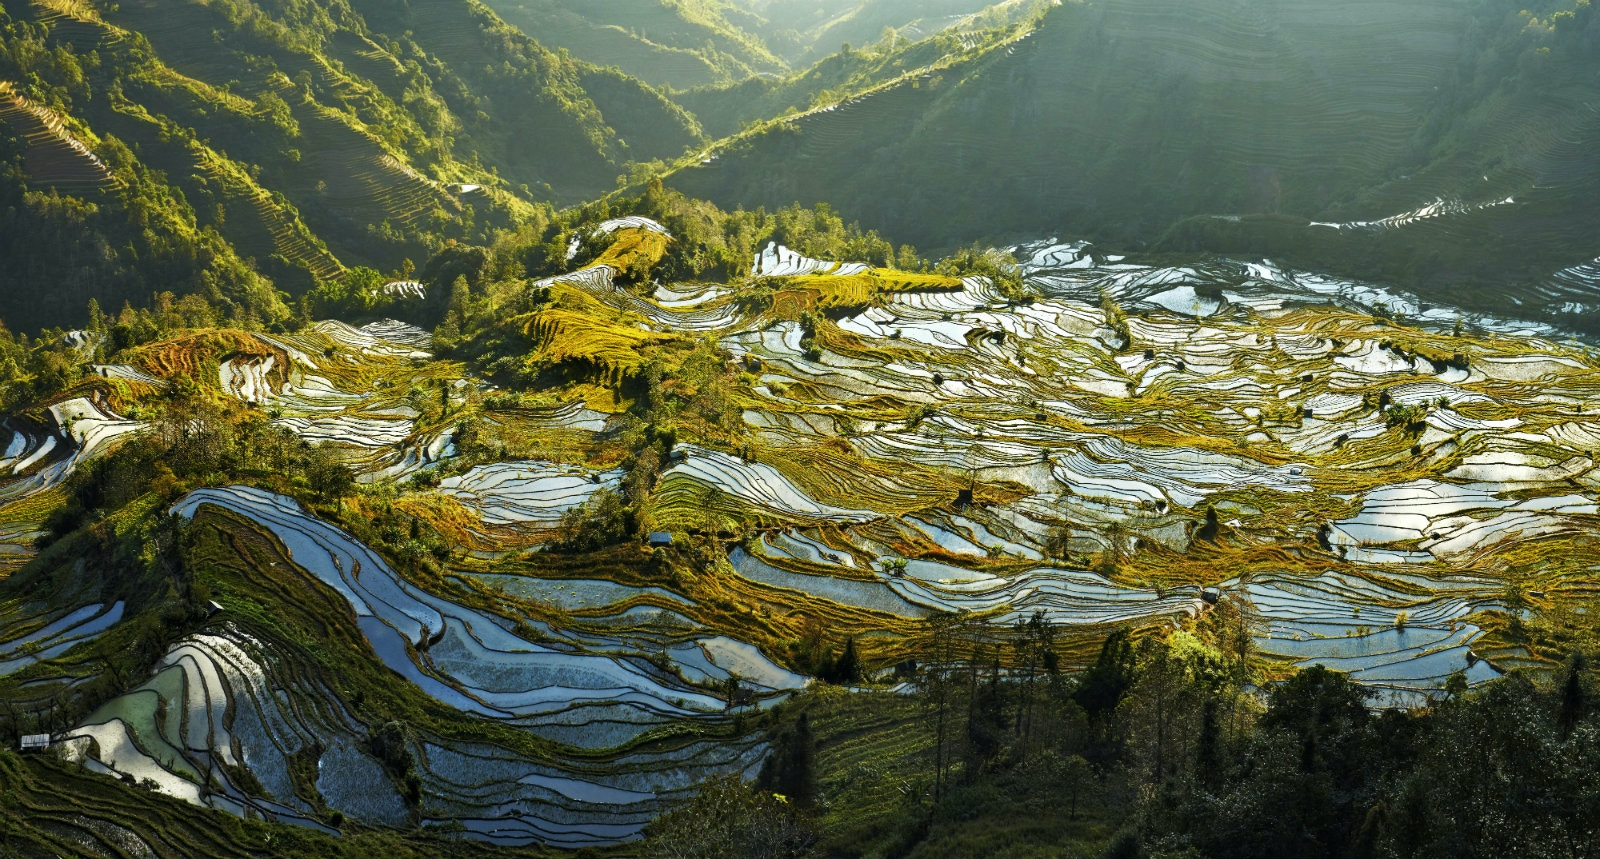 Seen from the Laohuzui viewpoint, the Yuanuang terraces rise up to 2,000 metres high © Alessandra Meniconzi